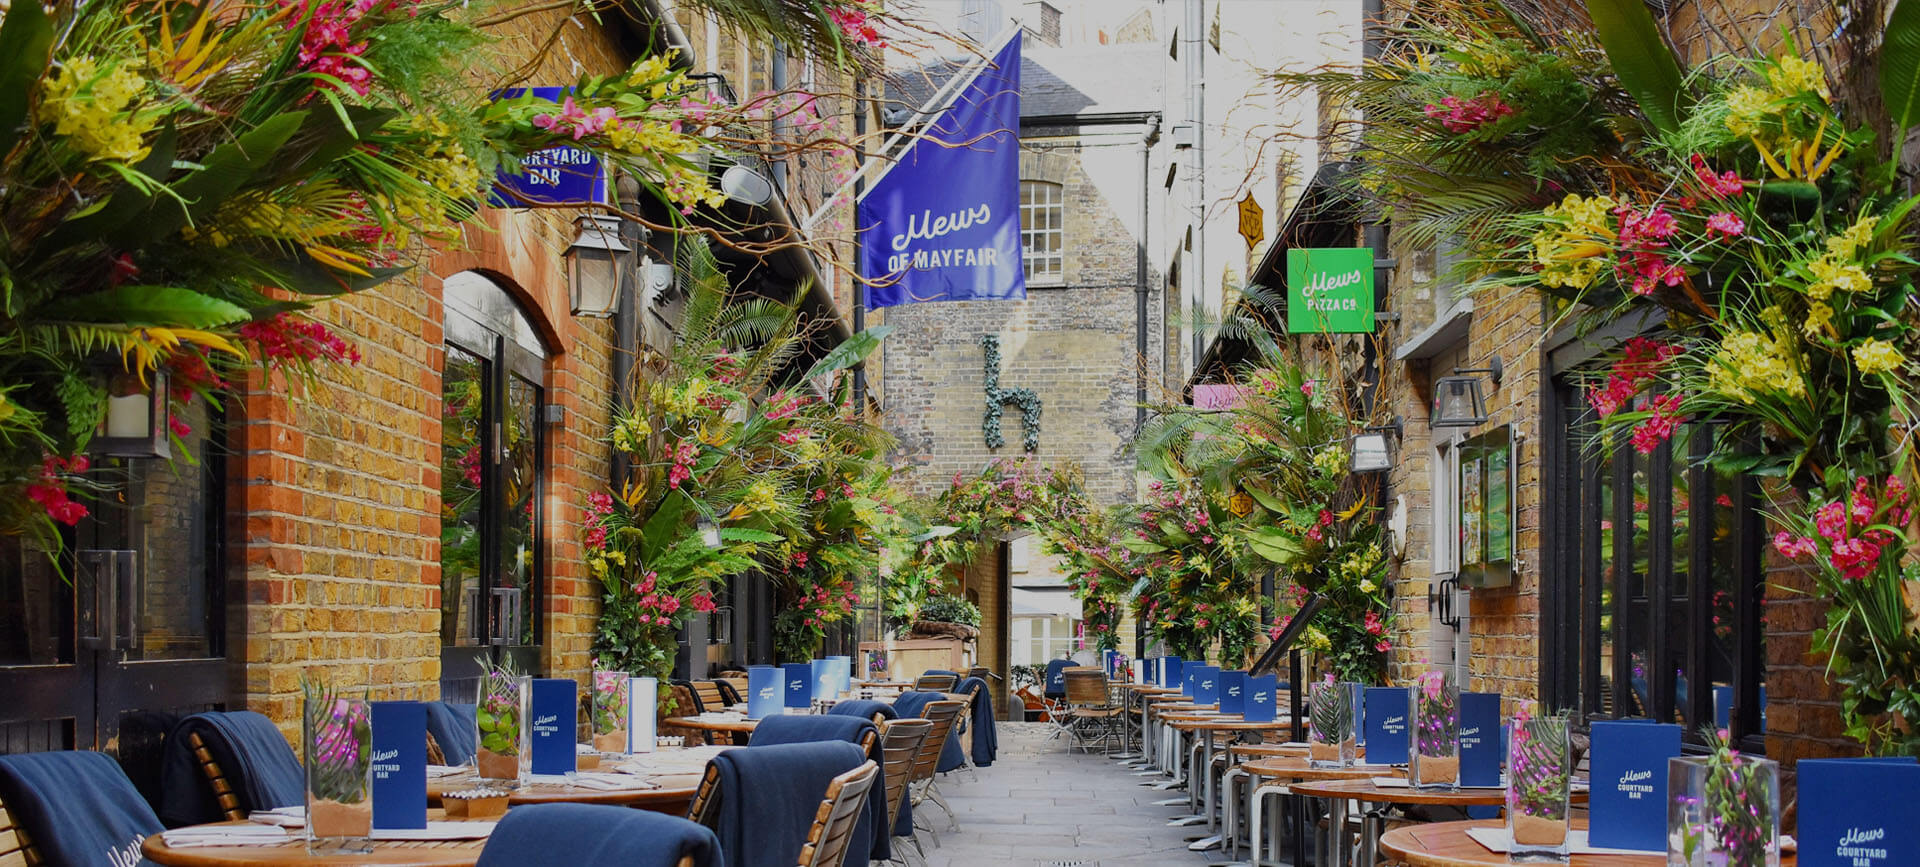 Mews of Mayfair refurbished and reopened